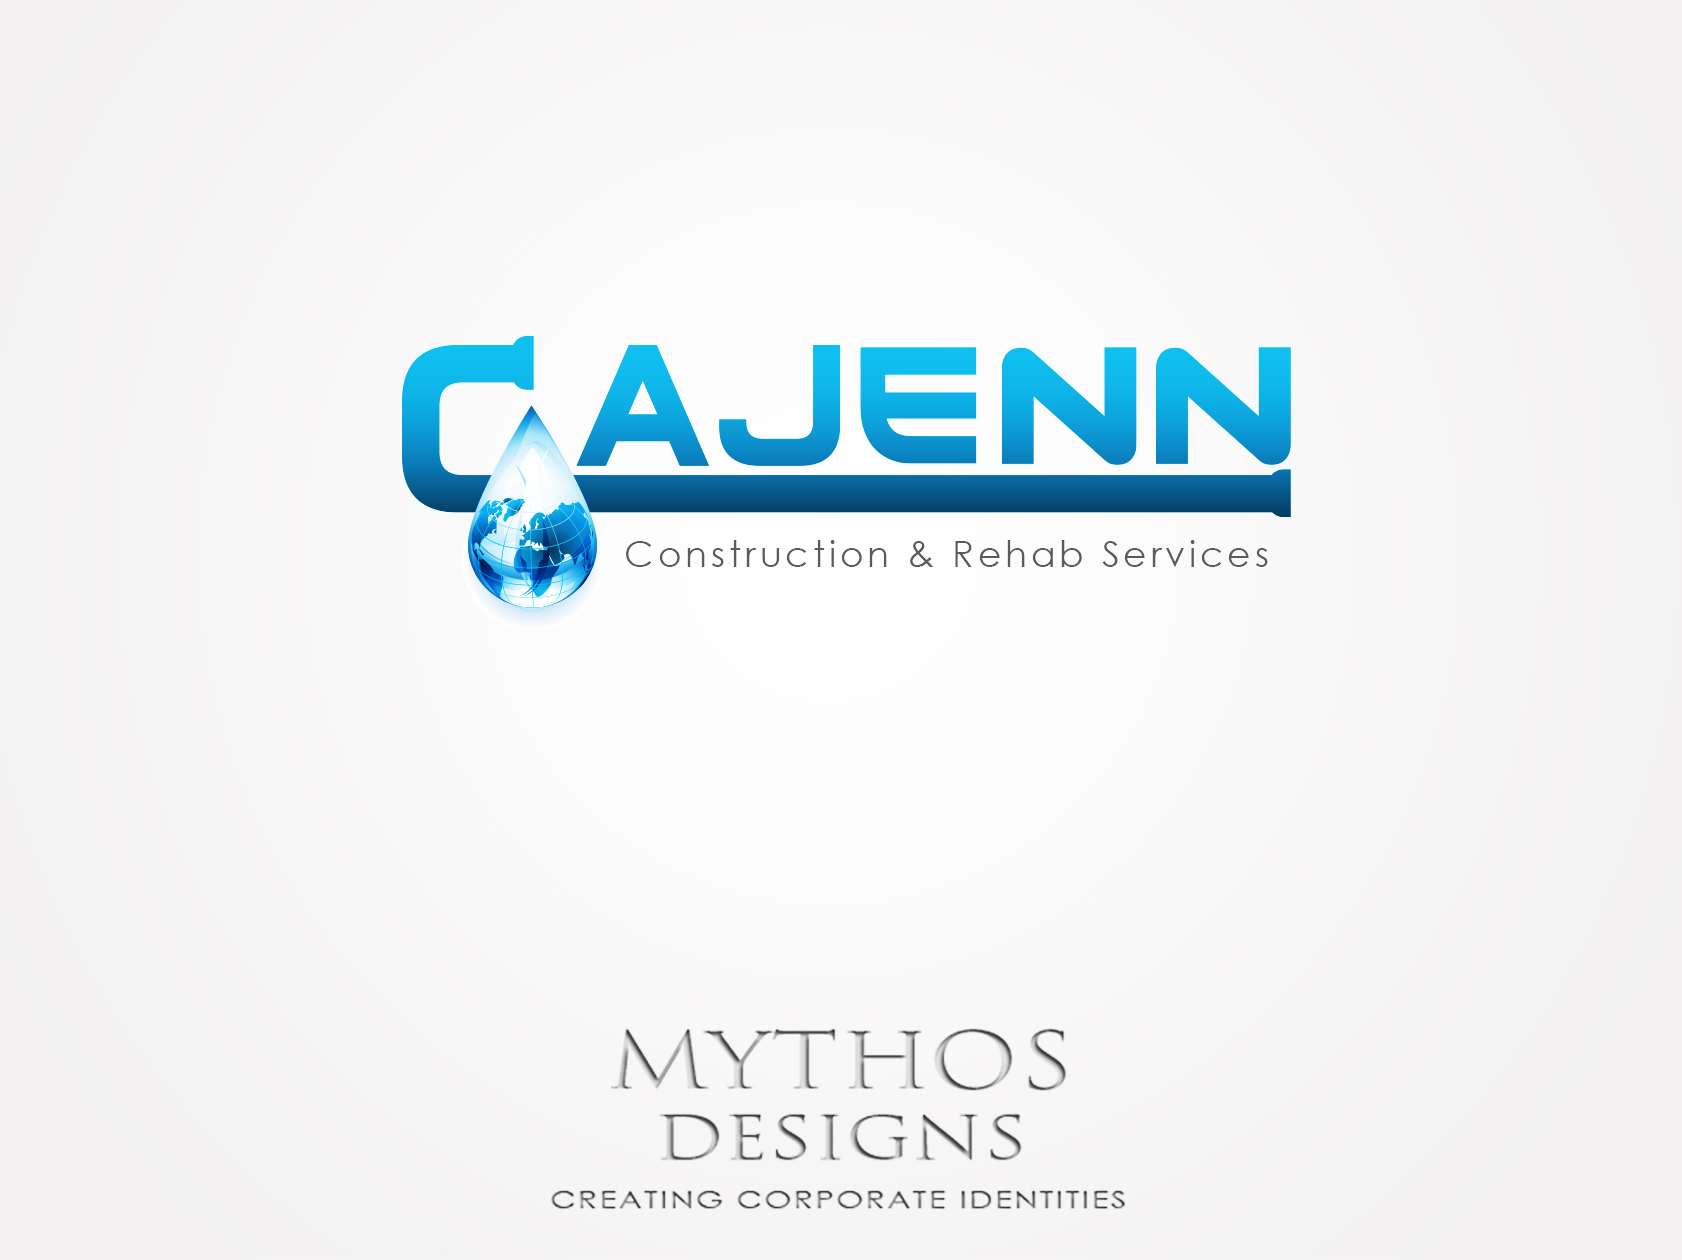 Logo Design by Mythos Designs - Entry No. 152 in the Logo Design Contest New Logo Design for CaJenn Construction & Rehab Services.